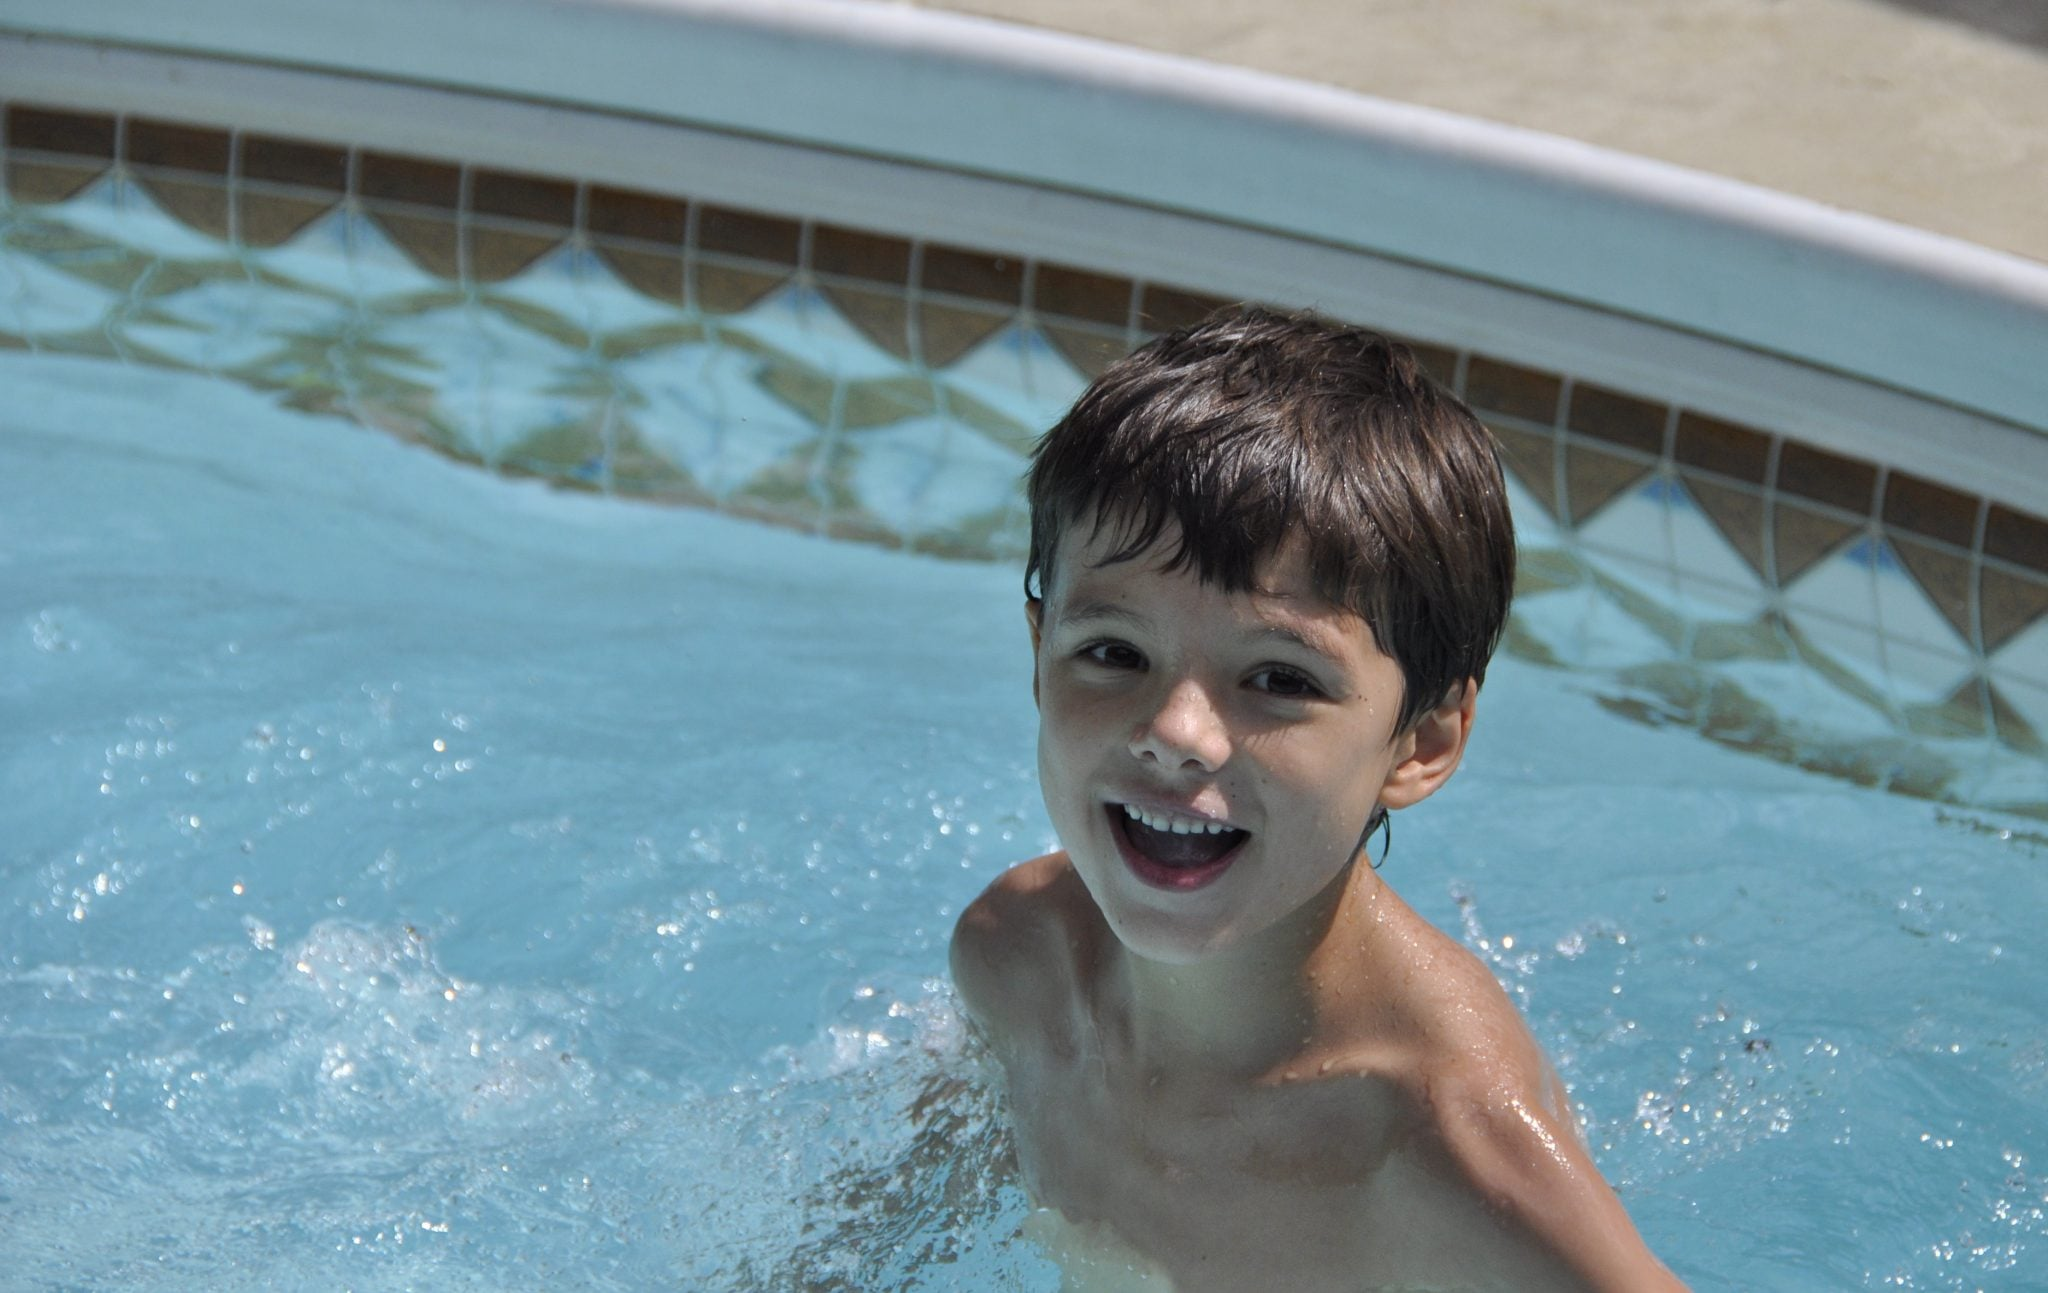 Cool Down Without The Chemicals How To Minimize Chlorine